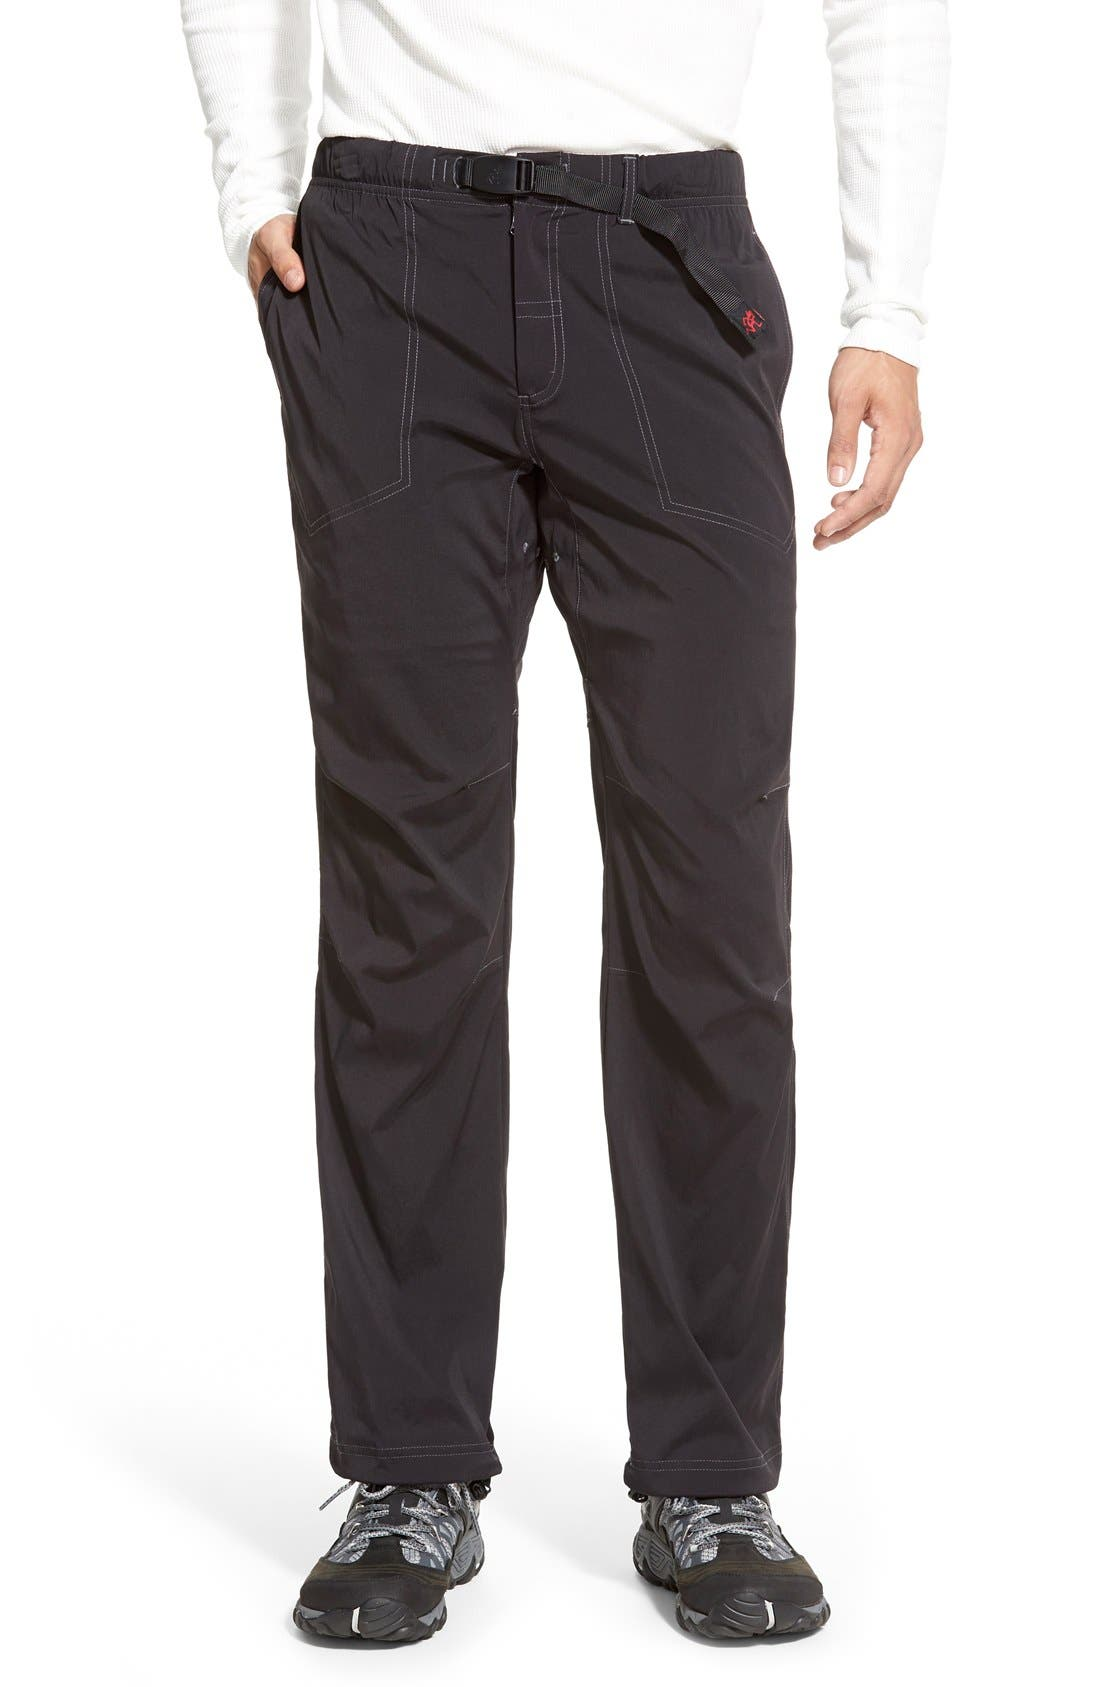 Main Image - Gramicci 'River G' Stretch Twill